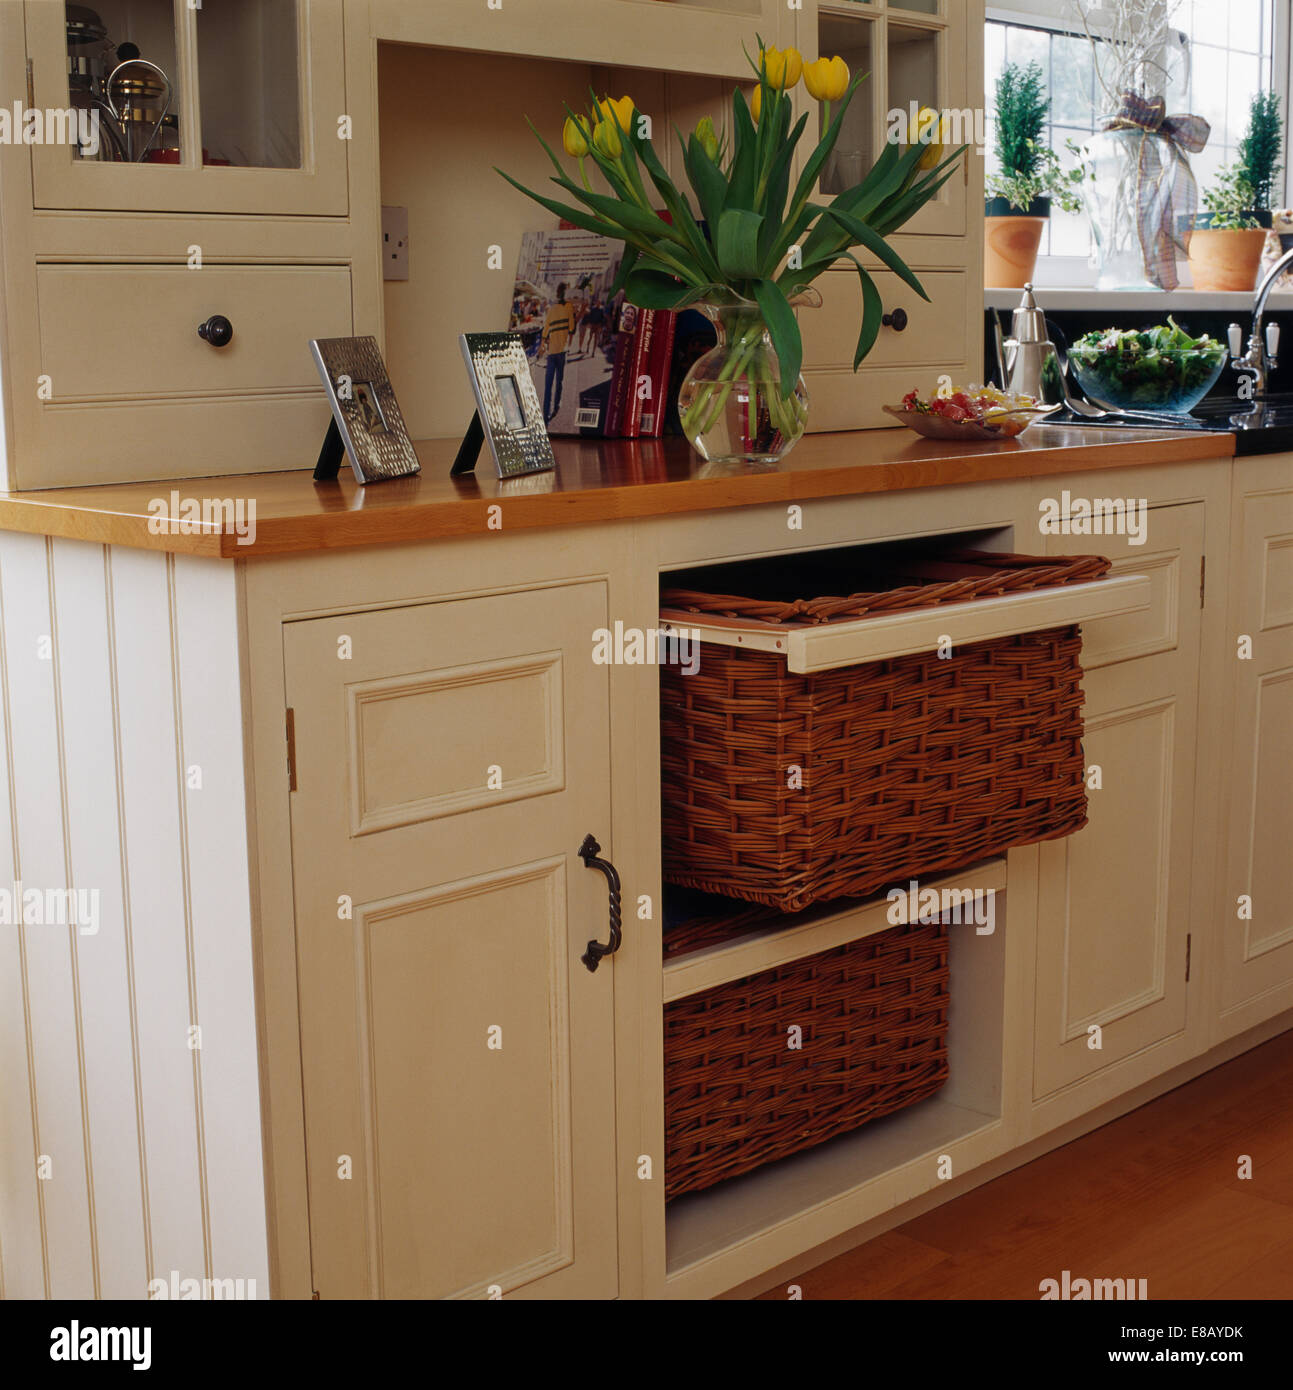 Stock Photo Wicker Storage Baskets On Shelving In Cream Painted Fitted Unit In Country Kitchen